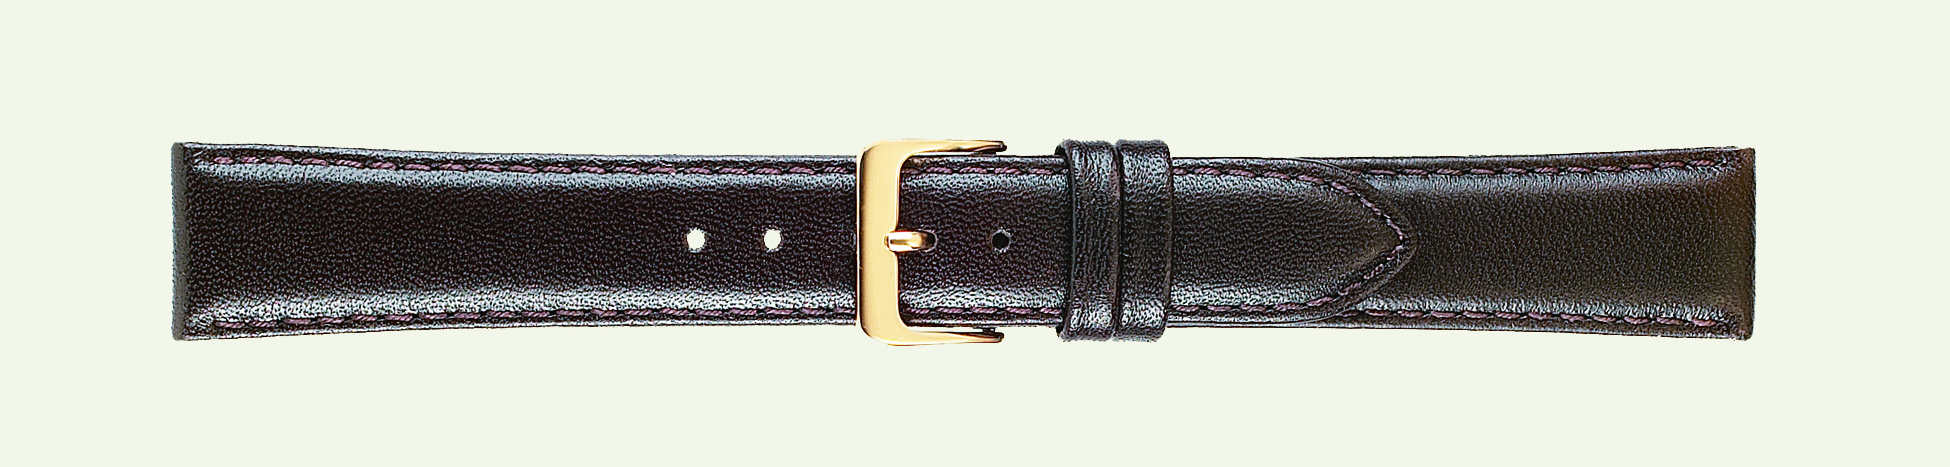 19MM Leather Band Brown Classic Calf Long-0